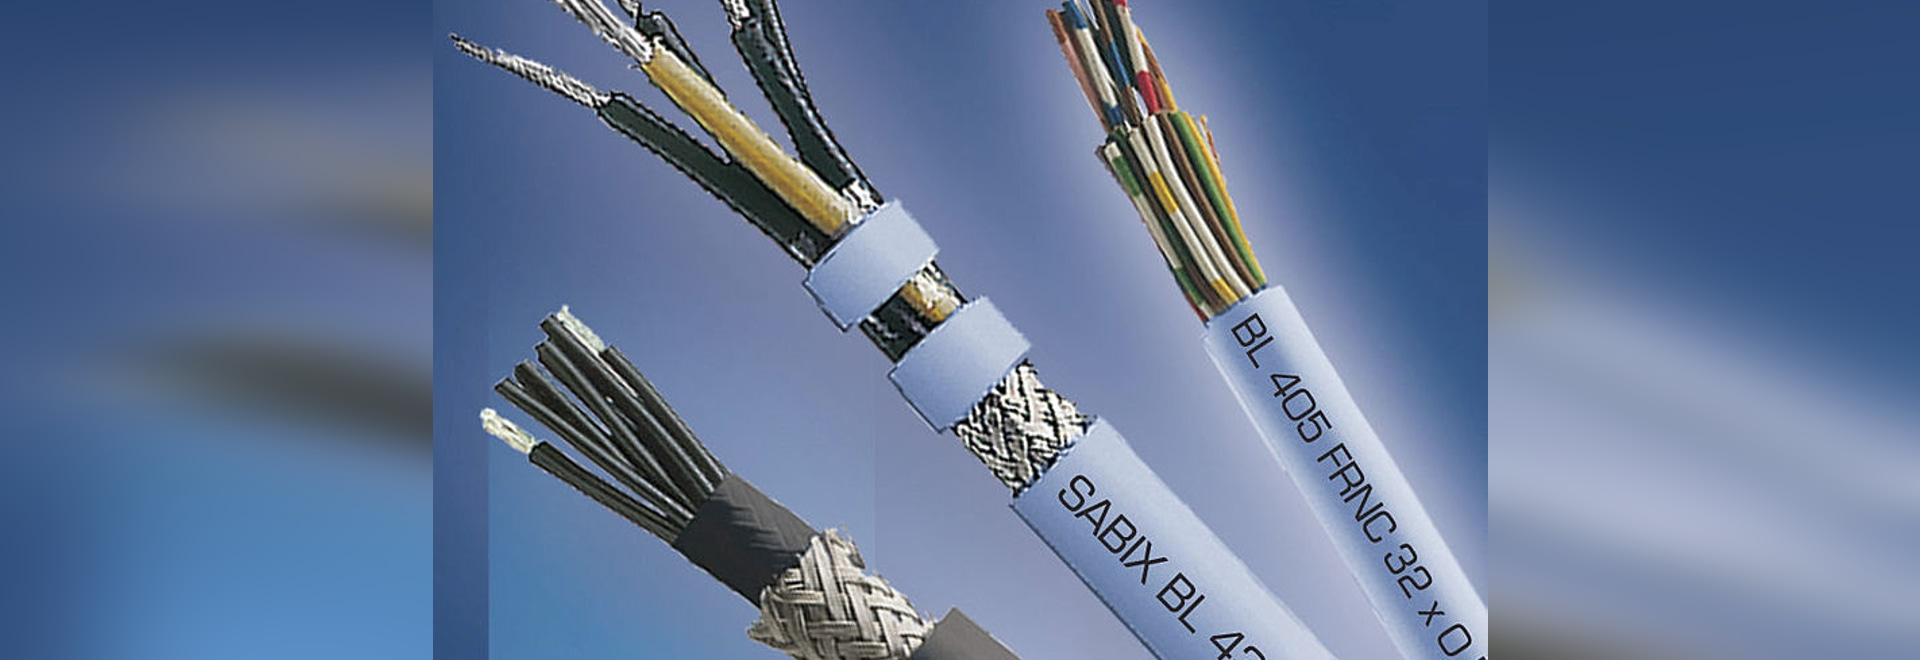 Cables and Wires for use in maritime industry - SAB BROECKSKES GMBH ...